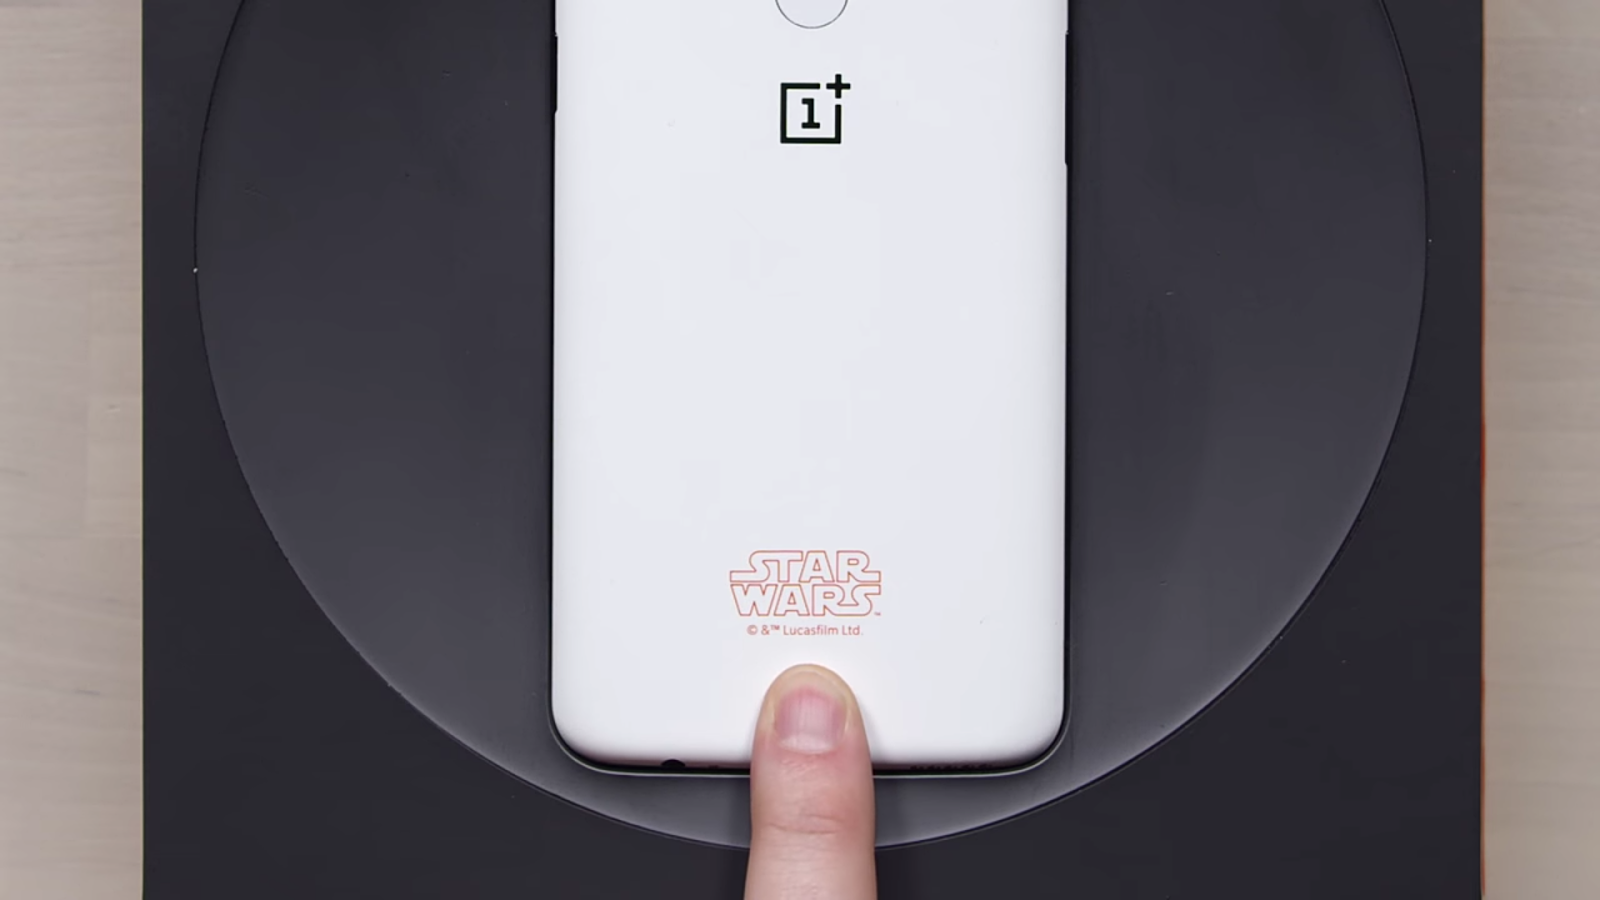 The Starwars logo on the OnePlus 5T smart phone